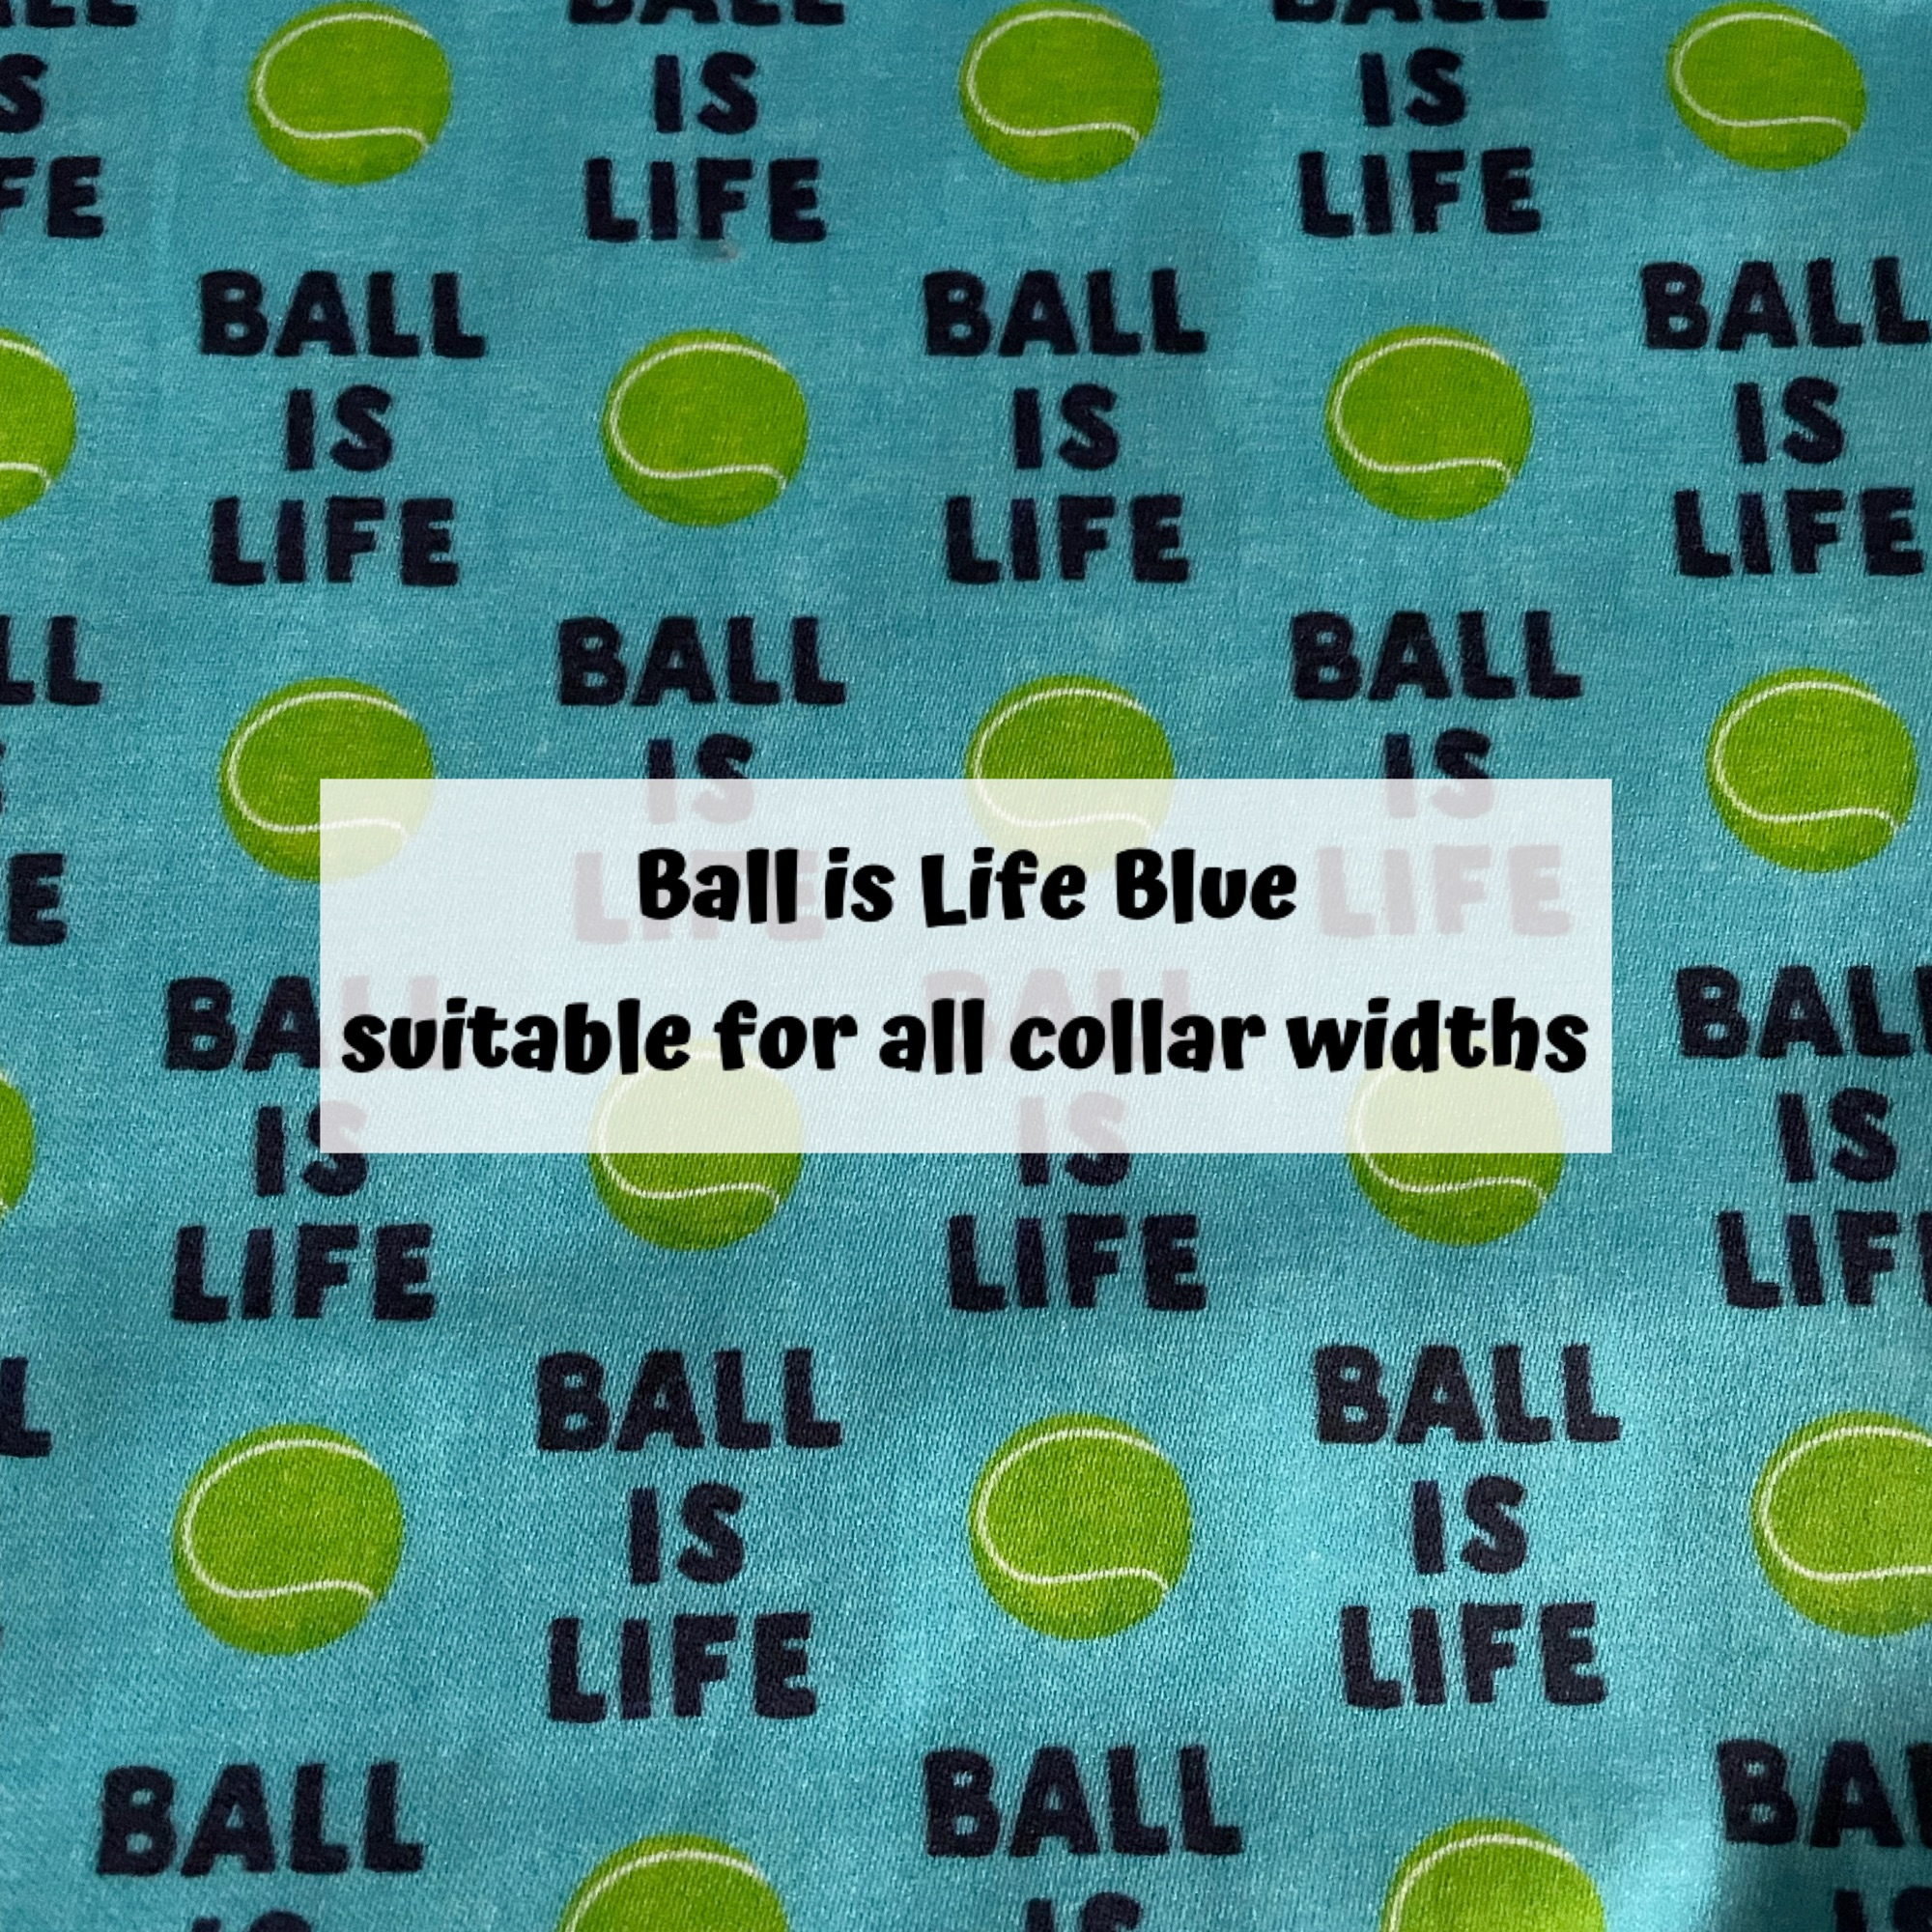 Ball is Life Blue